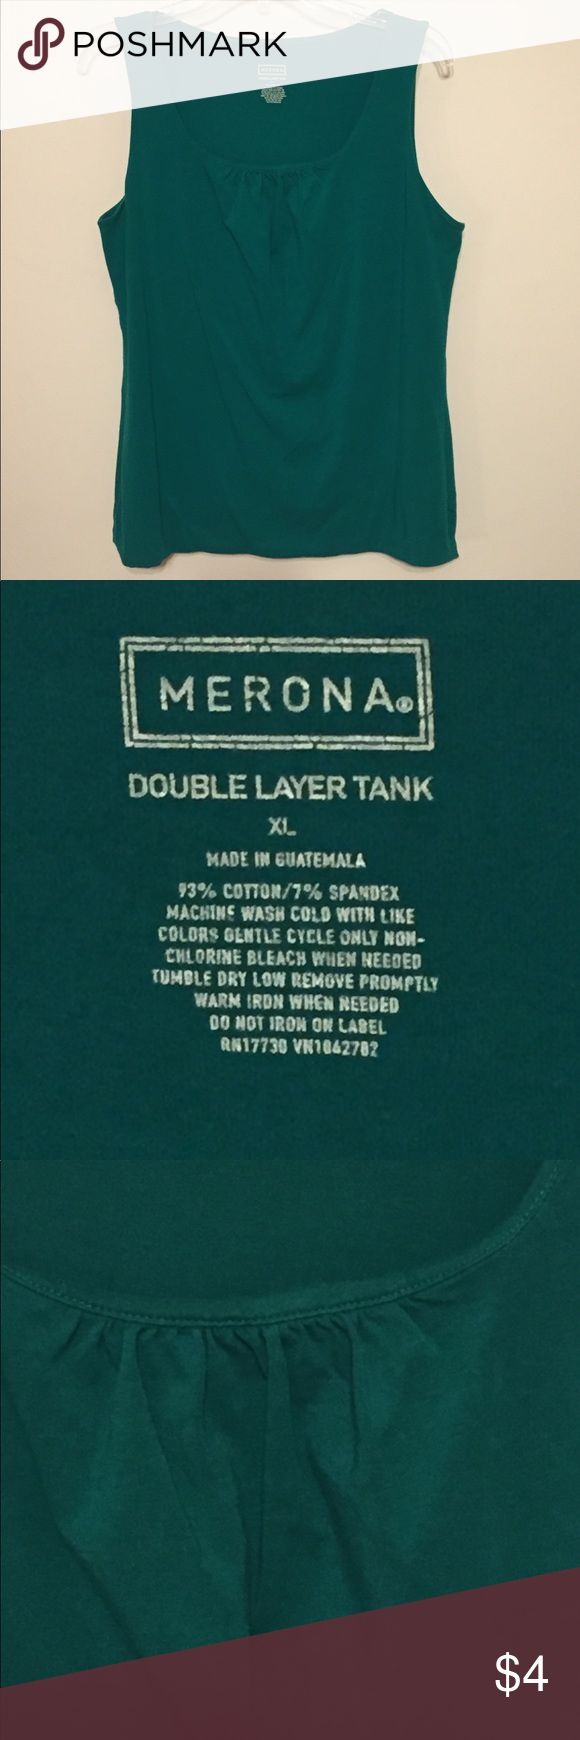 """NWOT Merona Double Layer Tank Top NWOT Never worn Merona Women's double layer tank top in jewel green. Picture shows gathering at the bottom of the scoop neckline. Measures 21"""" pit to pit and 23"""" top to bottom. Any questions, please ask!  Thanks for looking! 💝 Bundle your likes for a discount & save on shipping! Merona Tops Tank Tops"""